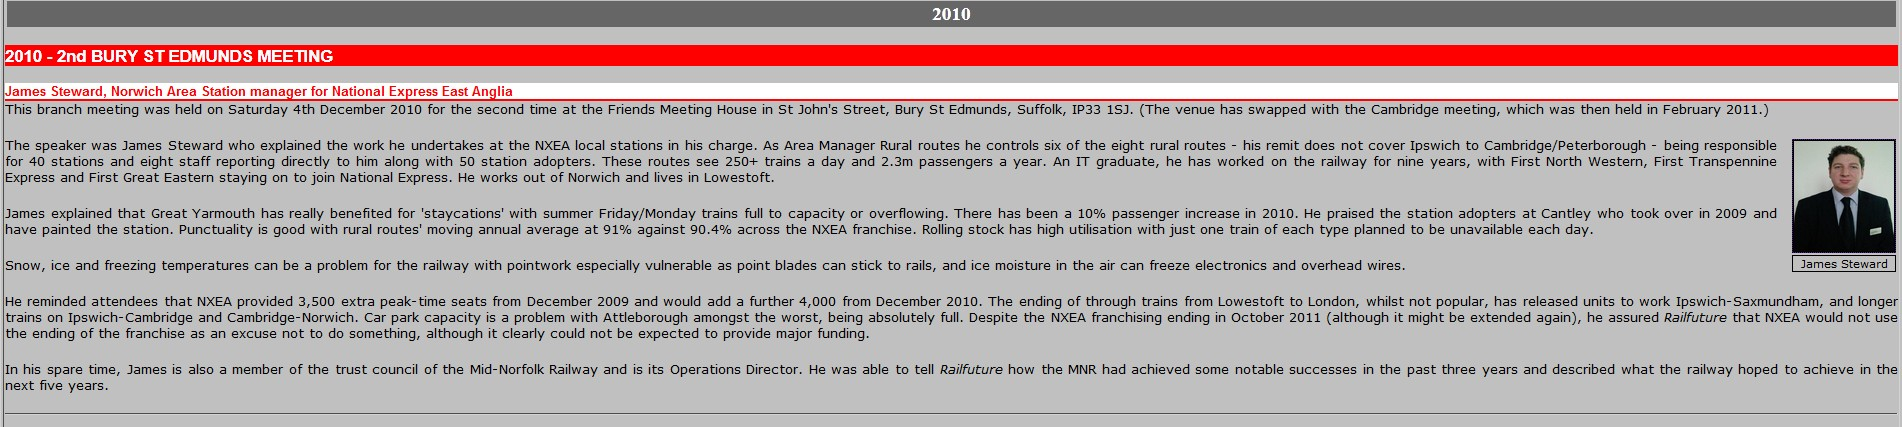 Screen capture of RailFutures website showing the entry on James Steward.